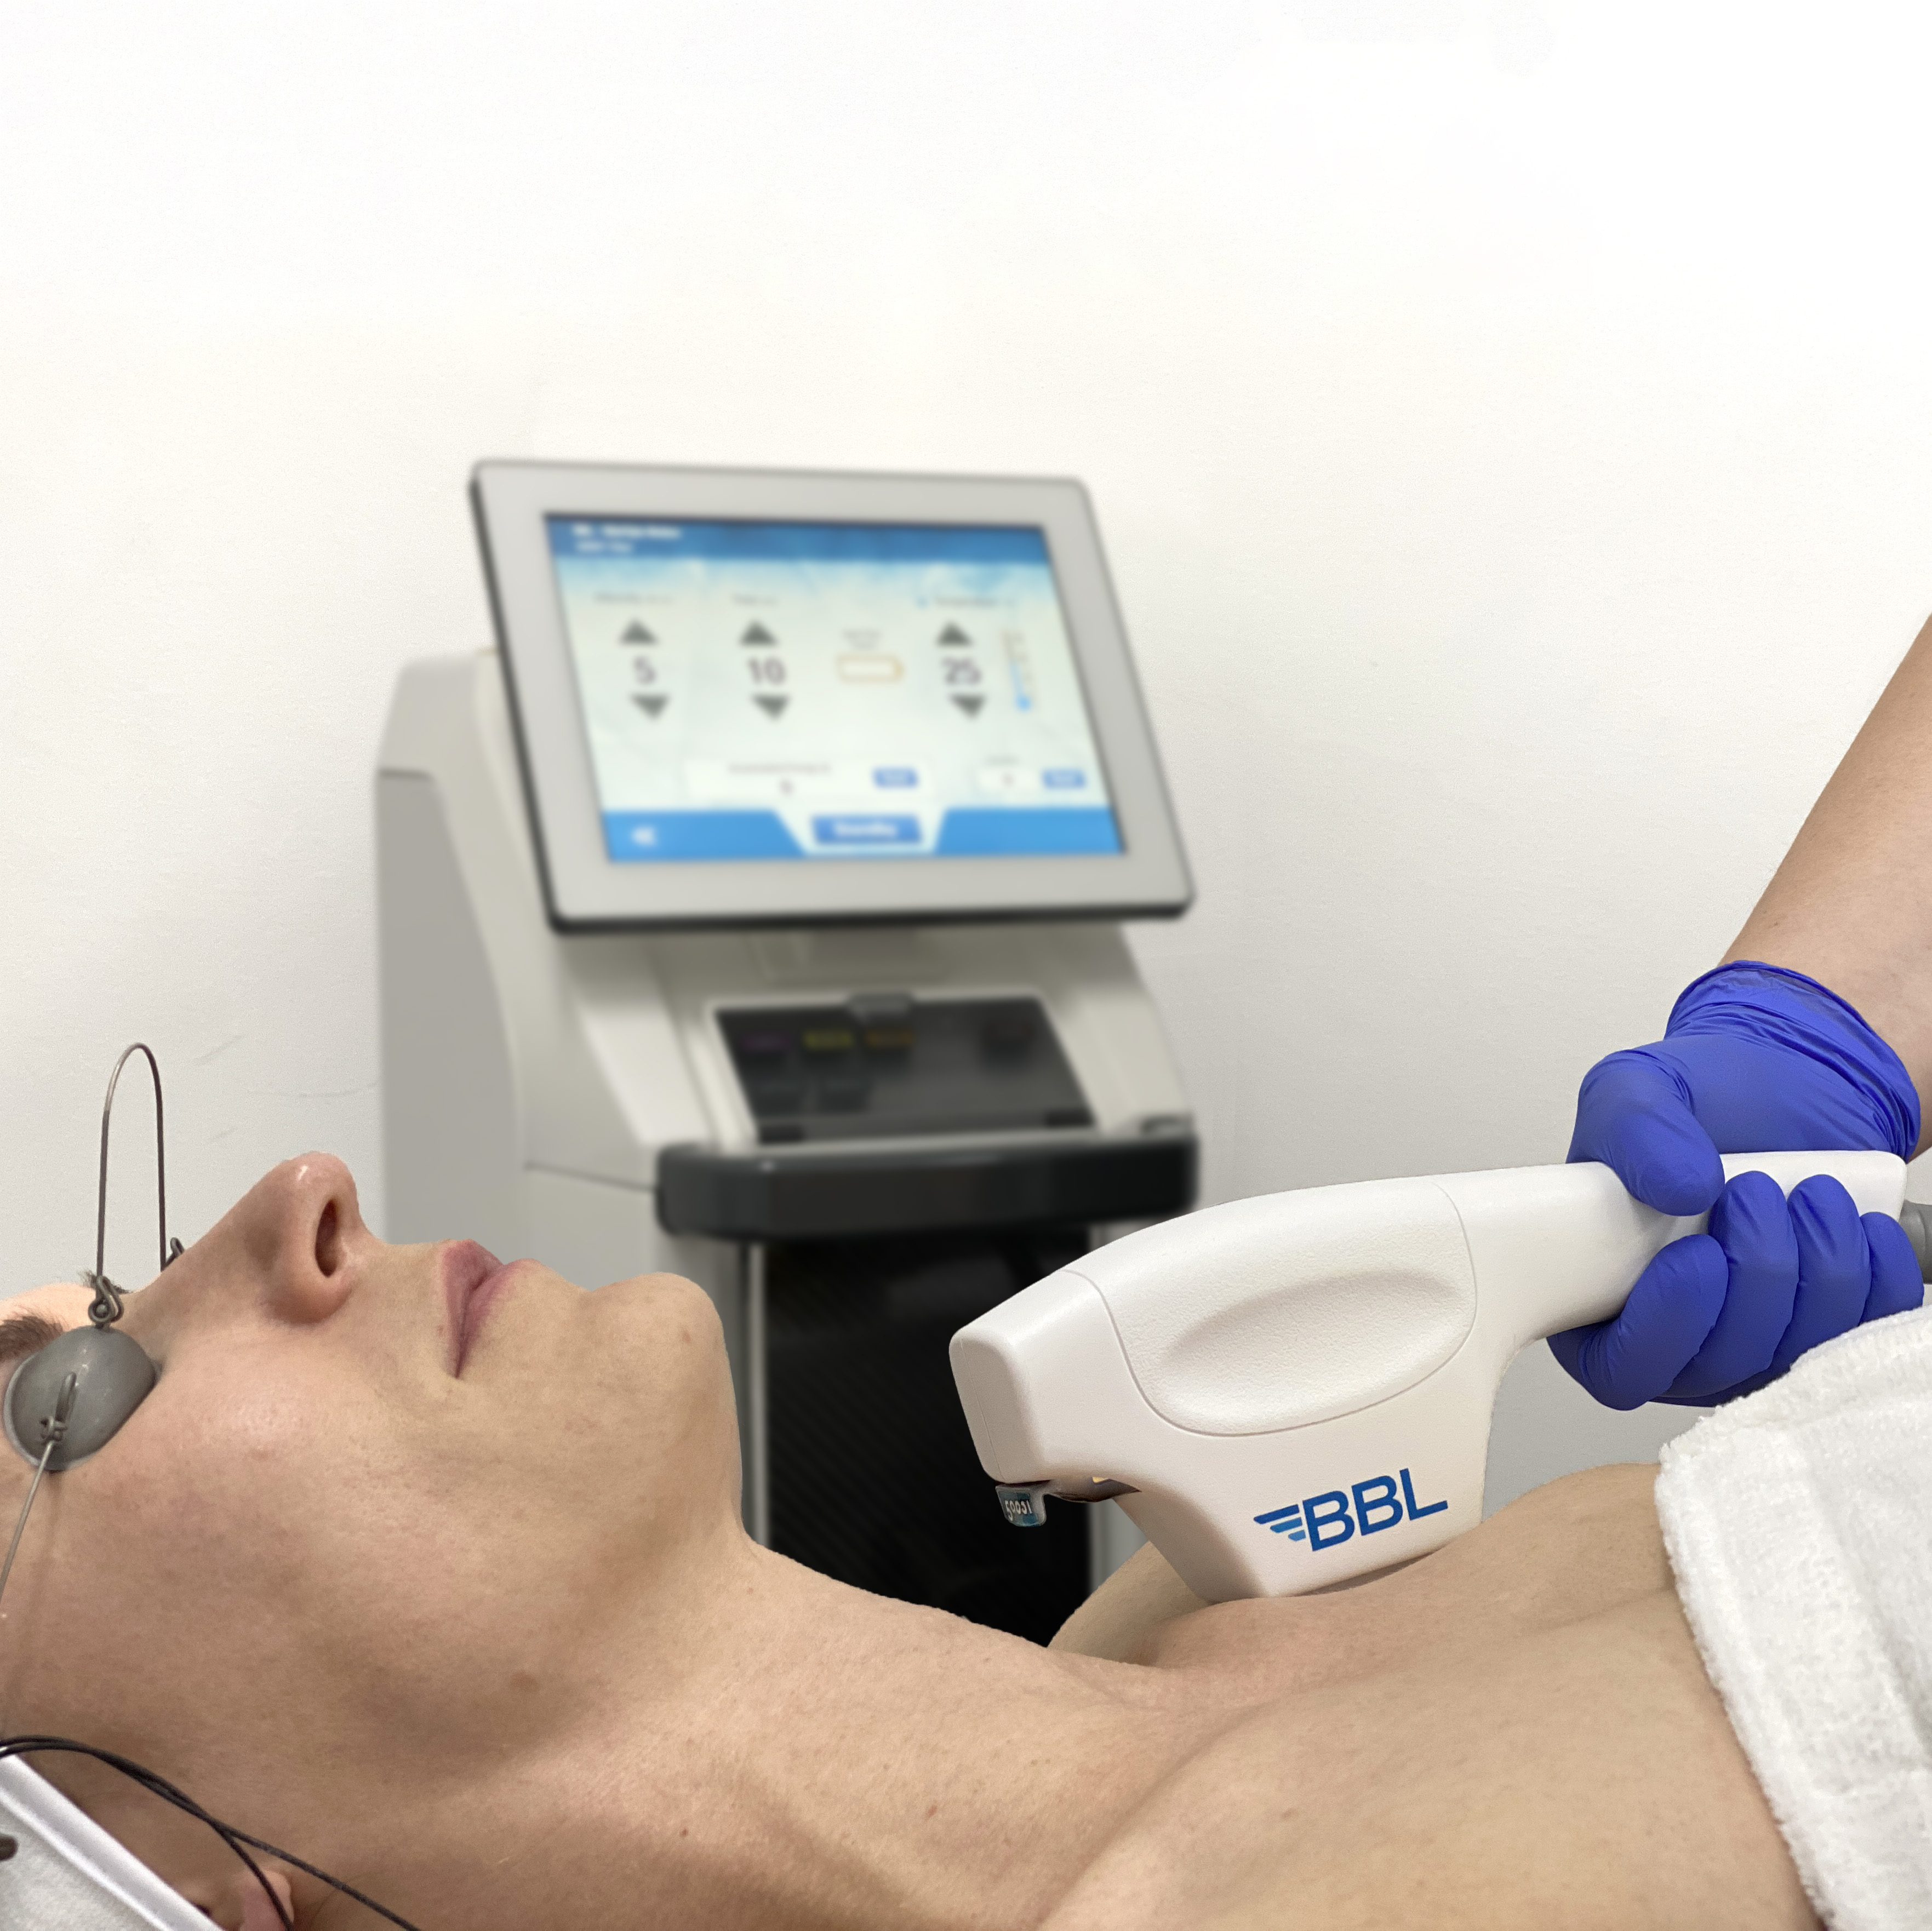 BBL treatment of a woman's chest